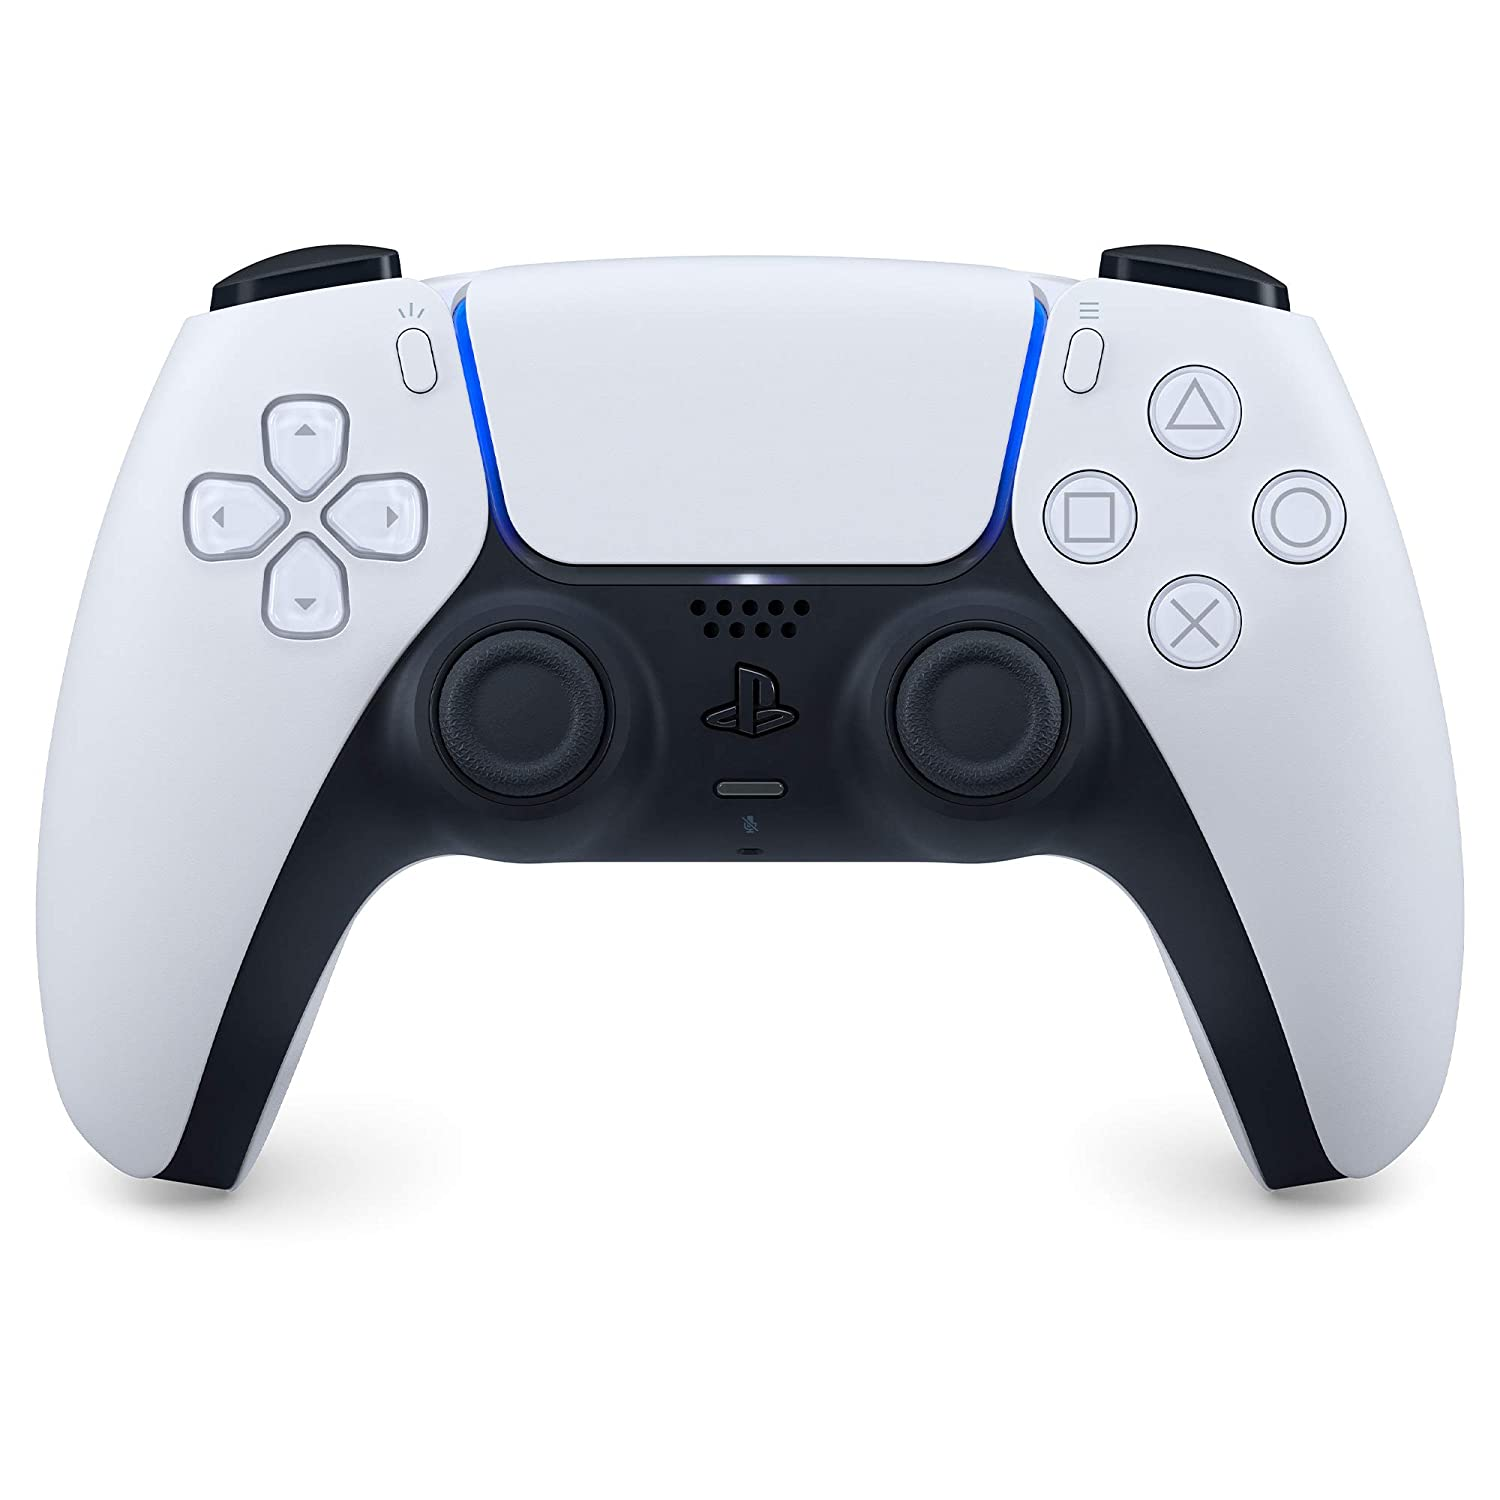 A front view of the DualSense controller, with its matte white and black body.